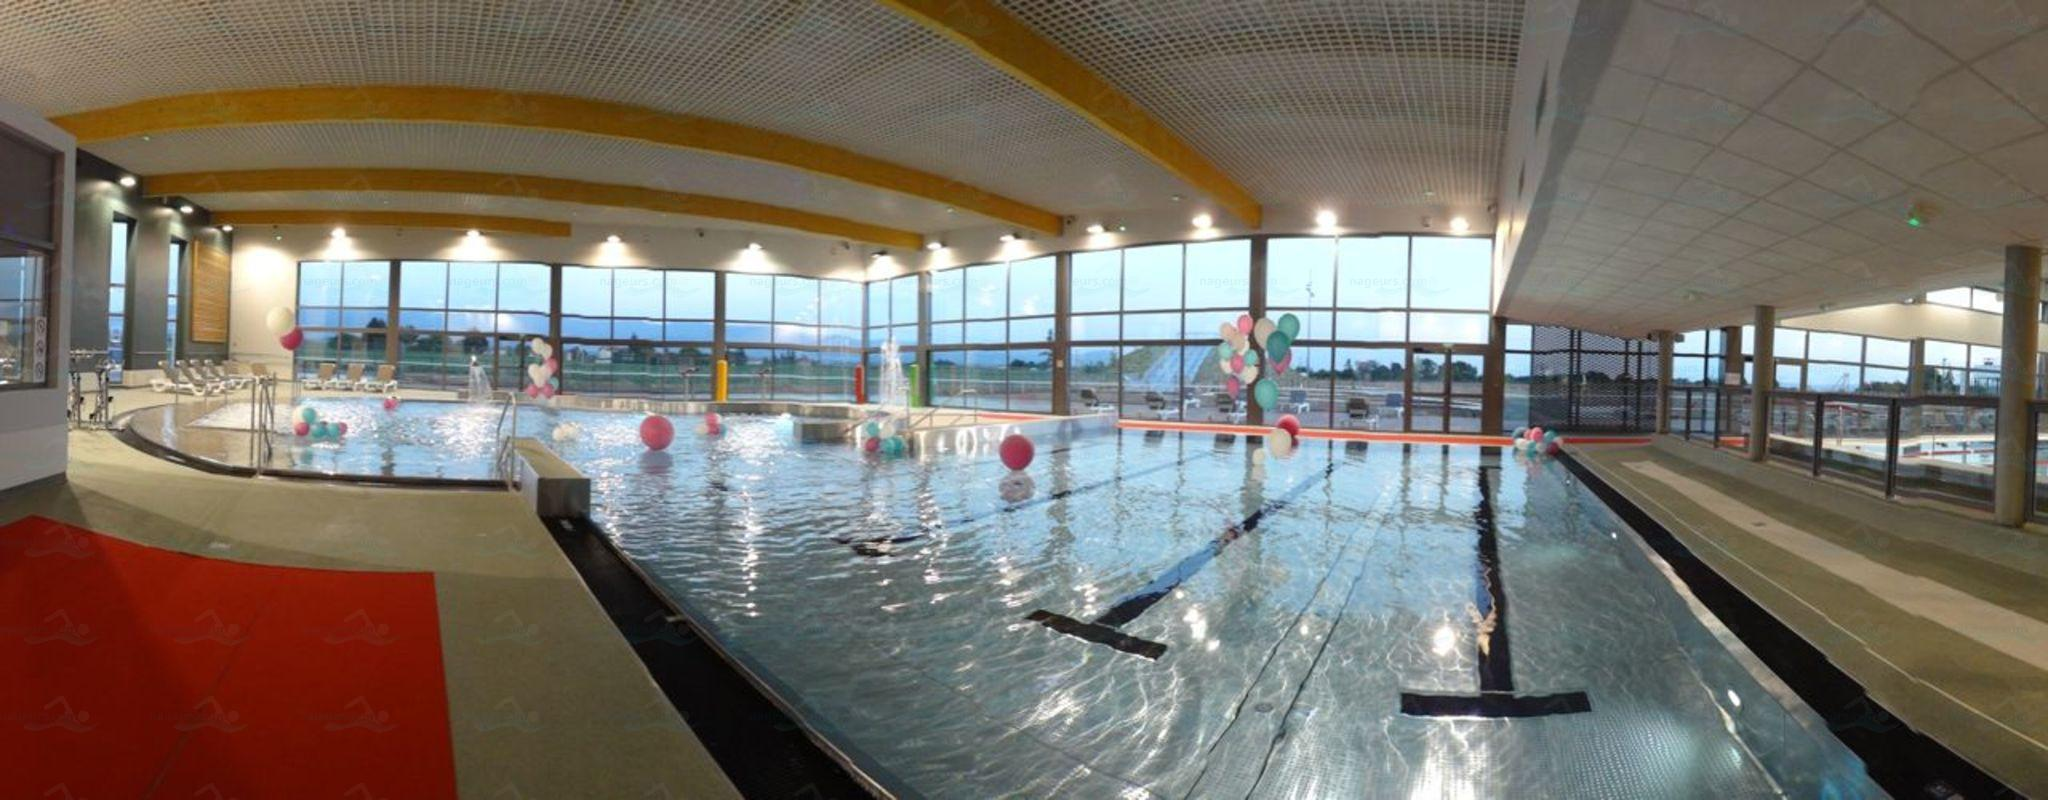 Photos piscine municipale de bourg de p age - Diabolo piscine ...